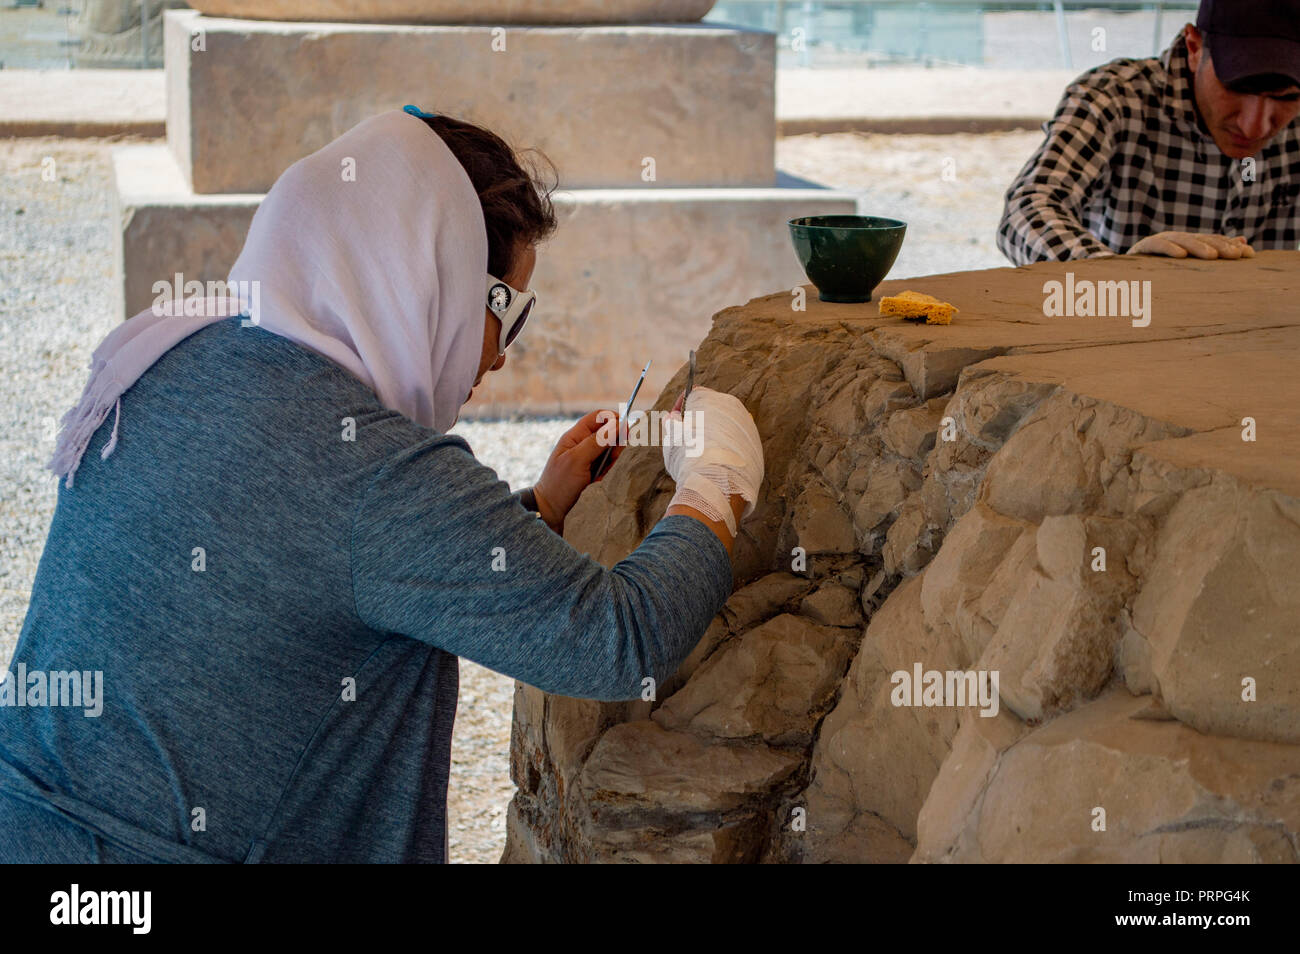 An archaeologist restoring a part of Persepolis, Iran - Stock Image